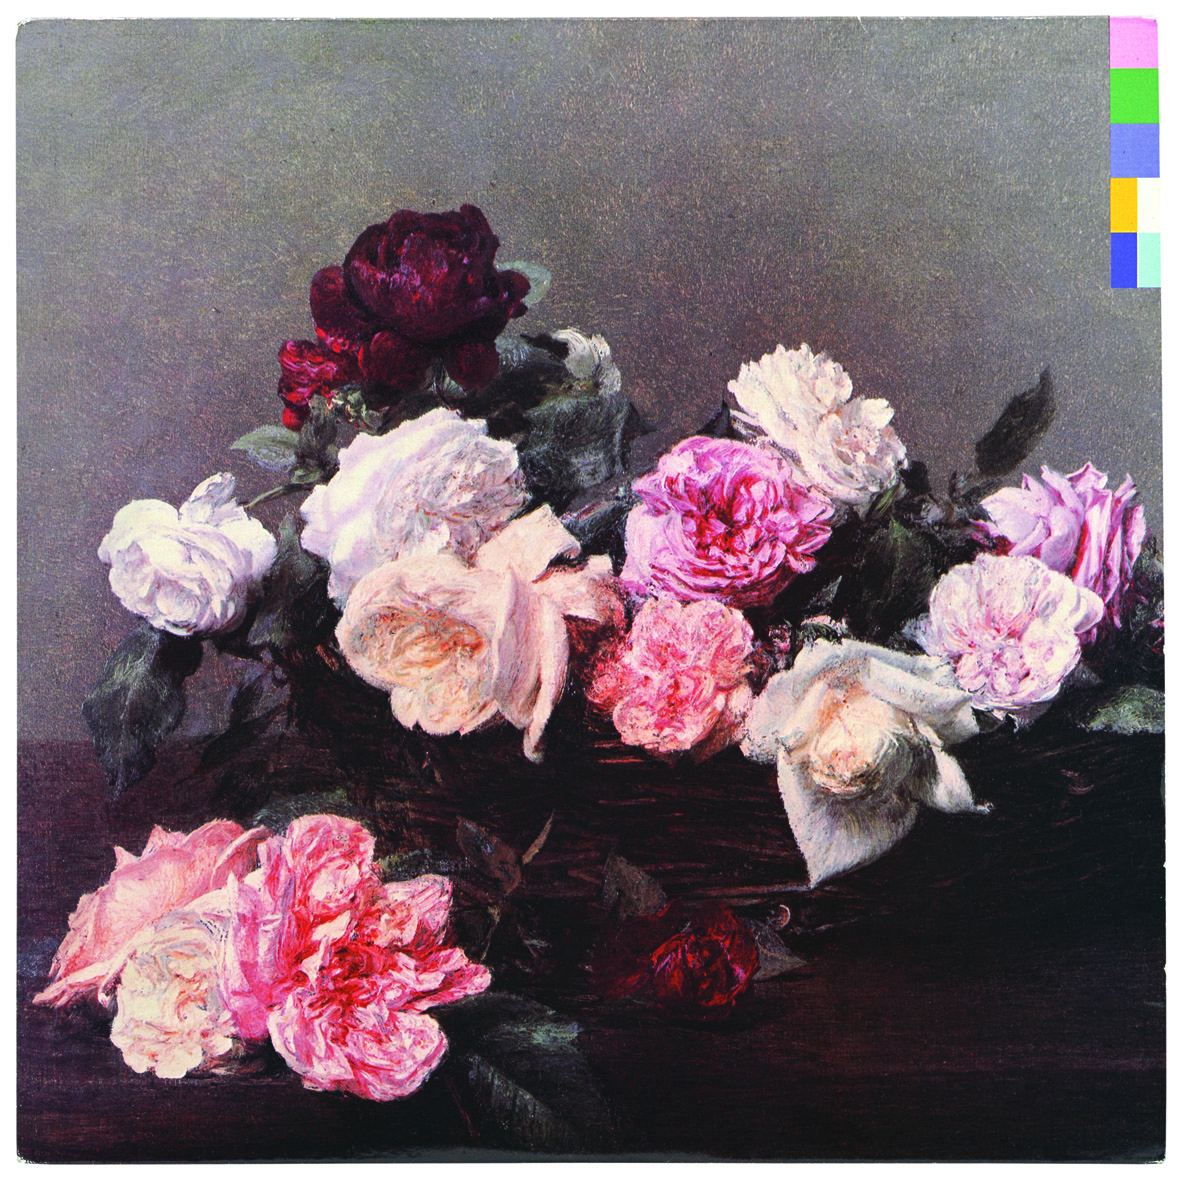 New Order - Power, Corruption, and Lies - cover di Peter Saville